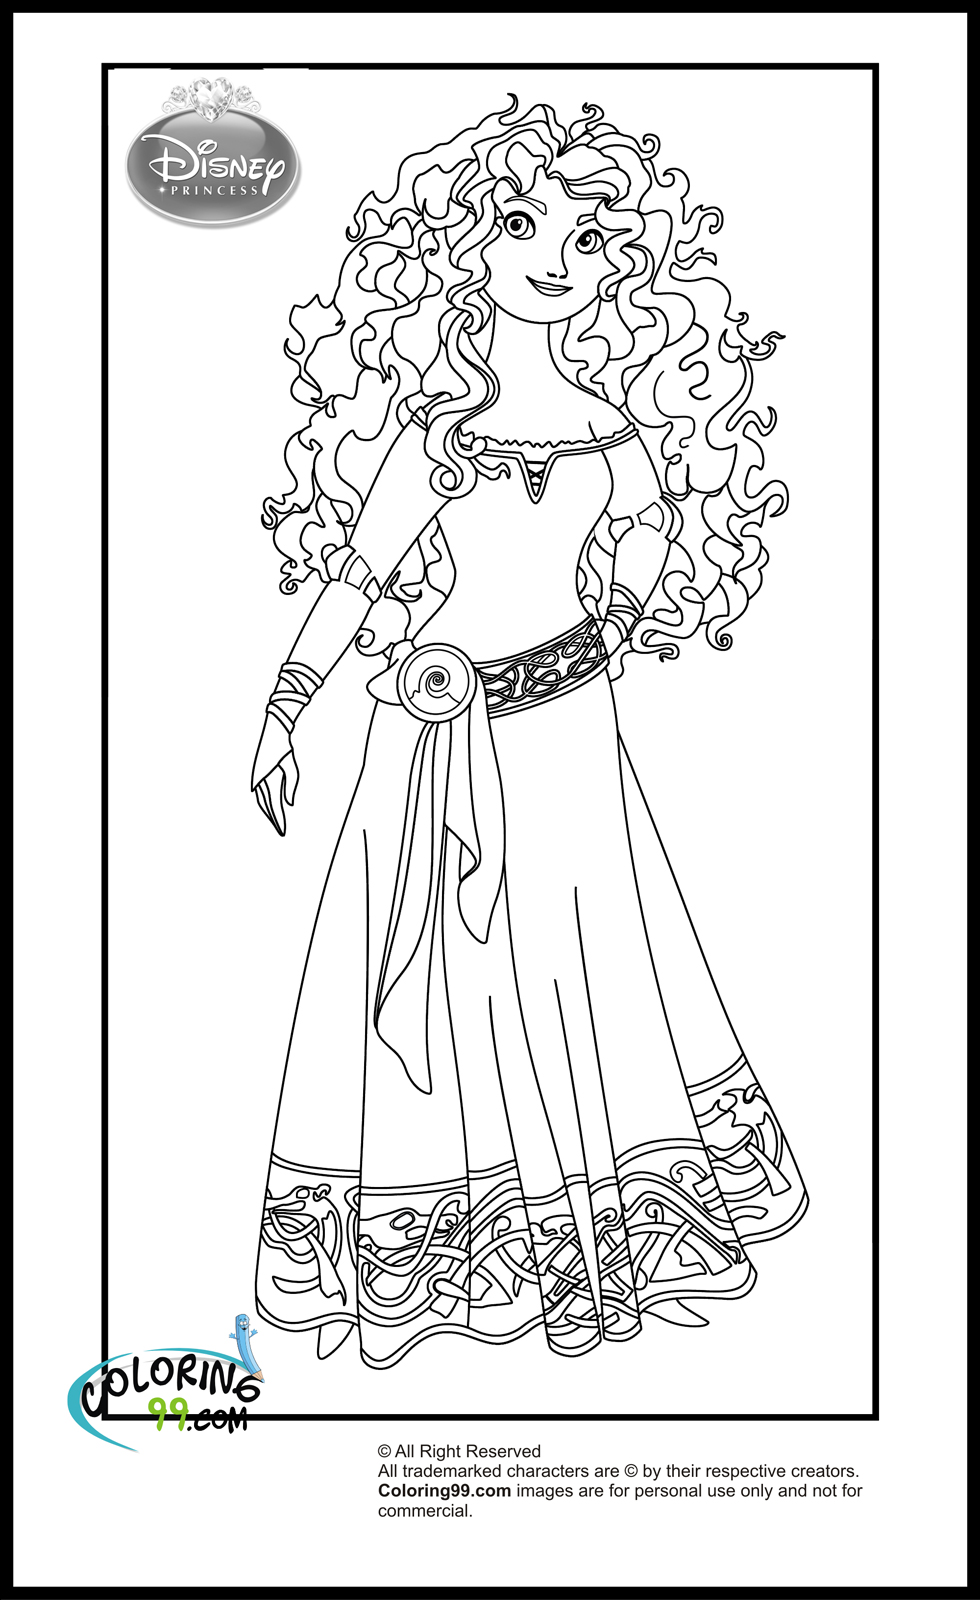 colouring pages for disney princesses disney princess belle coloring pages to kids princesses colouring pages disney for